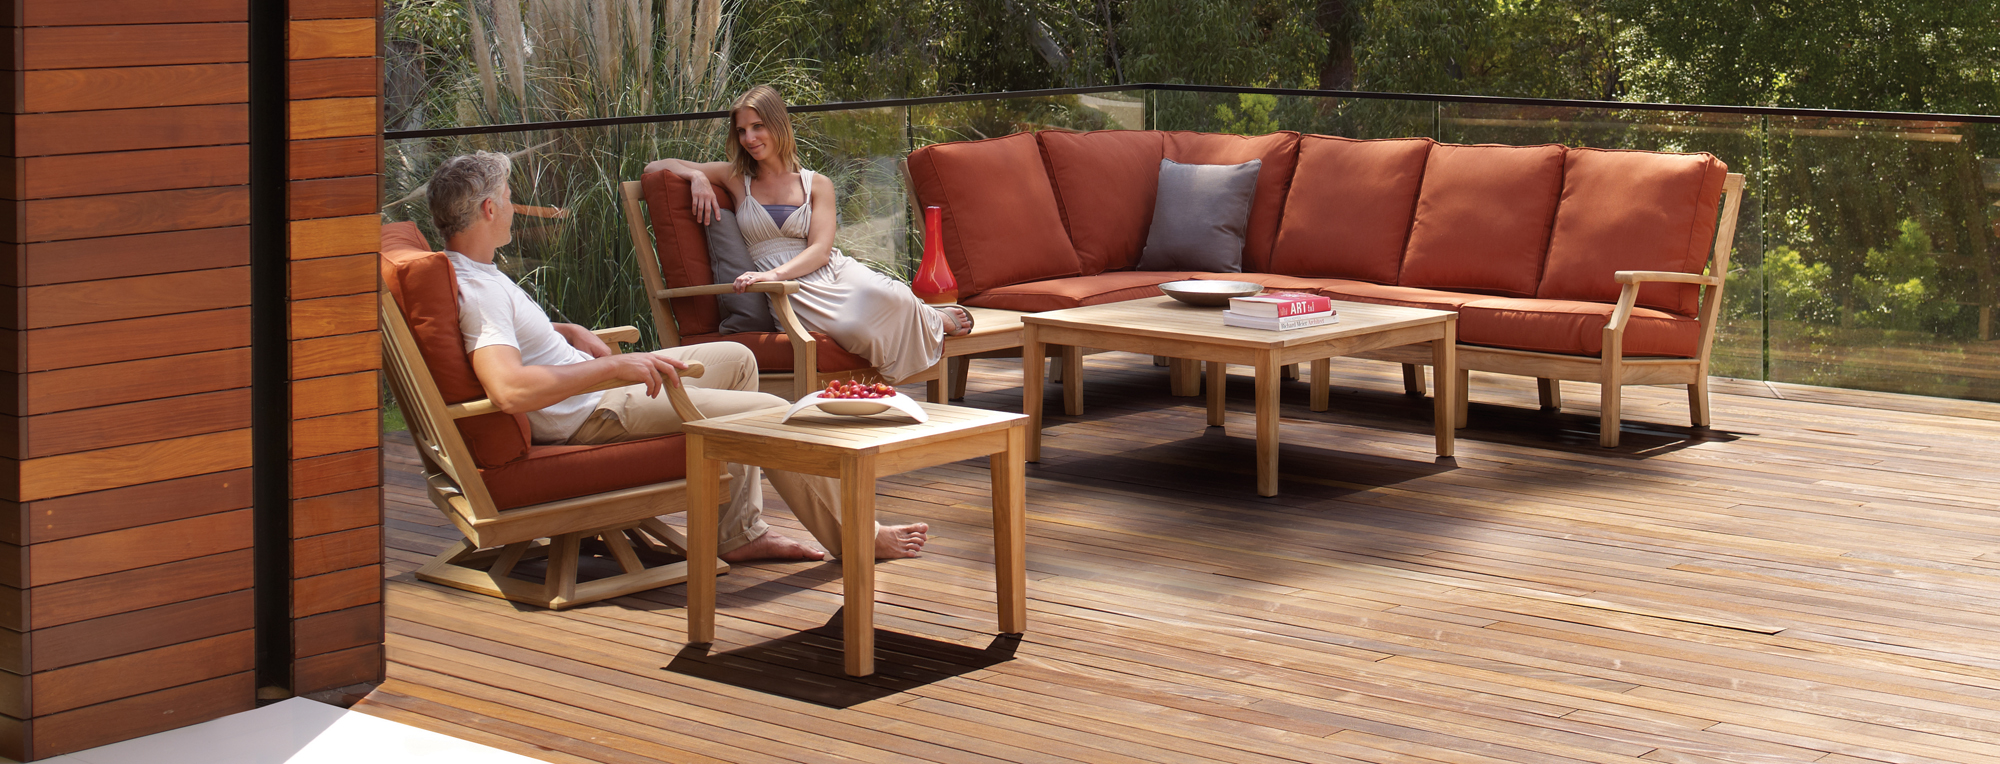 Patio Furniture Los Angeles, Santa Monica, Beverly Hills U0026 Malibu | Victory  Furniture Part 48